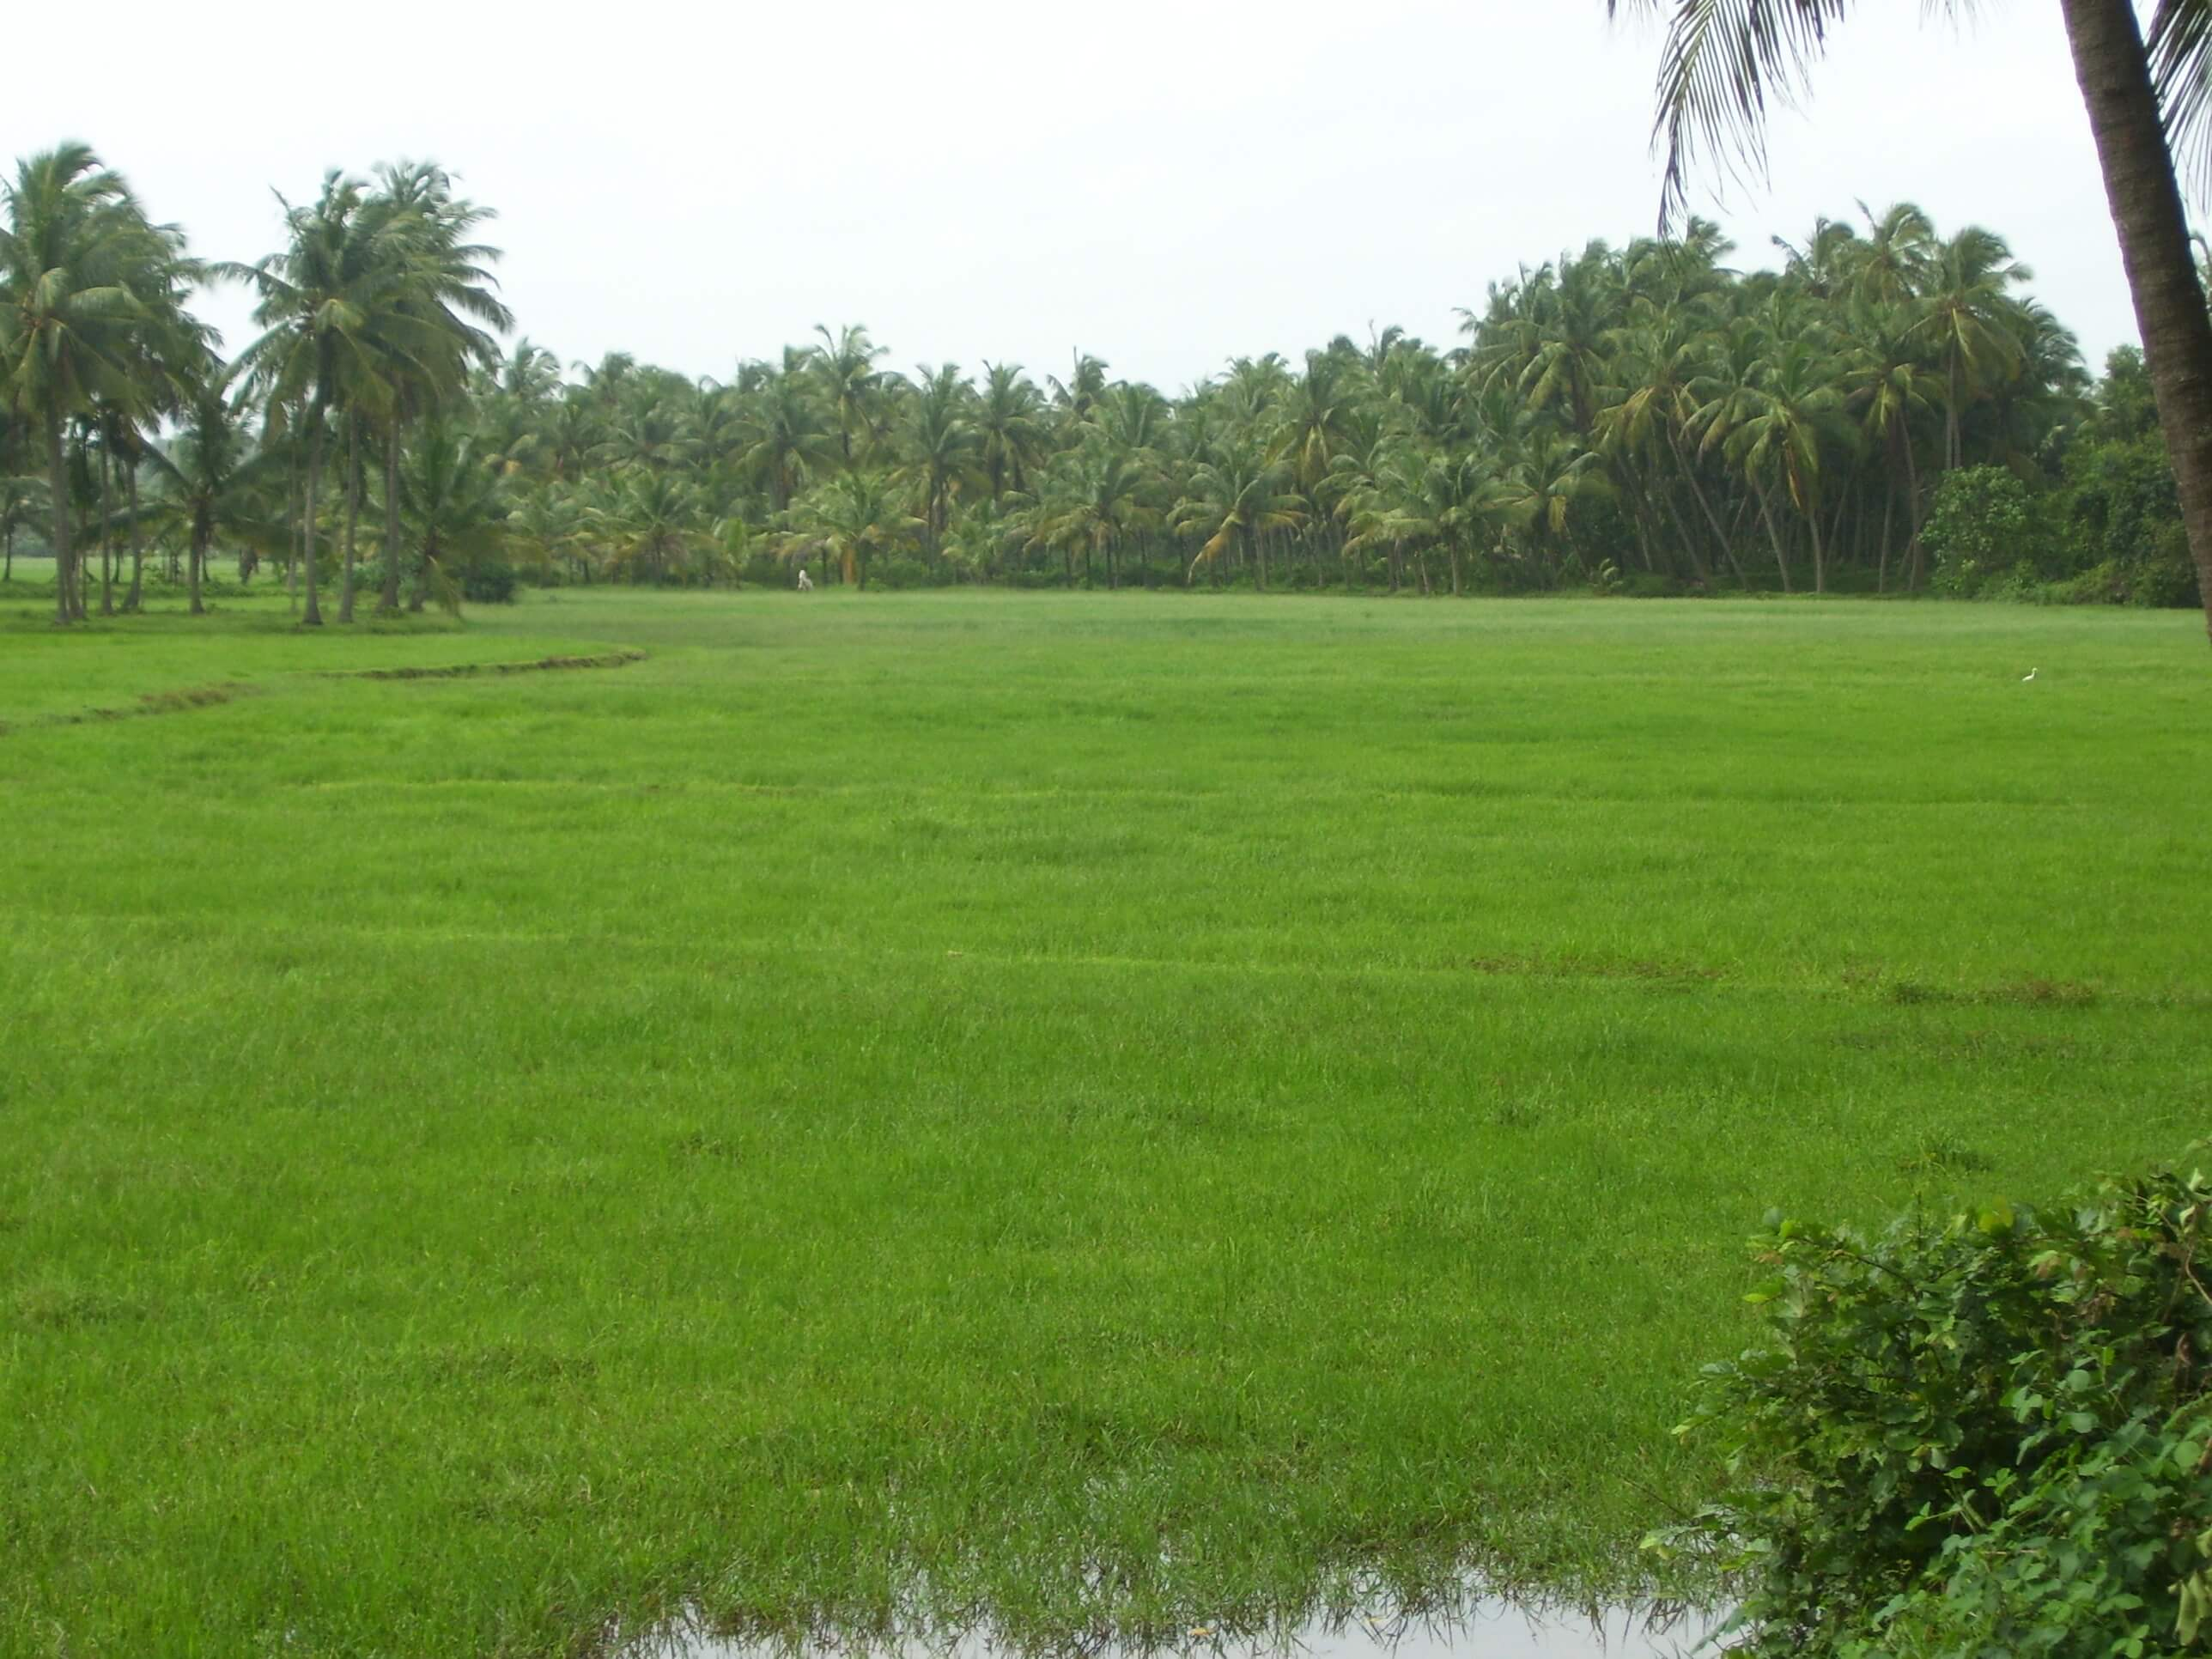 green fields in south india